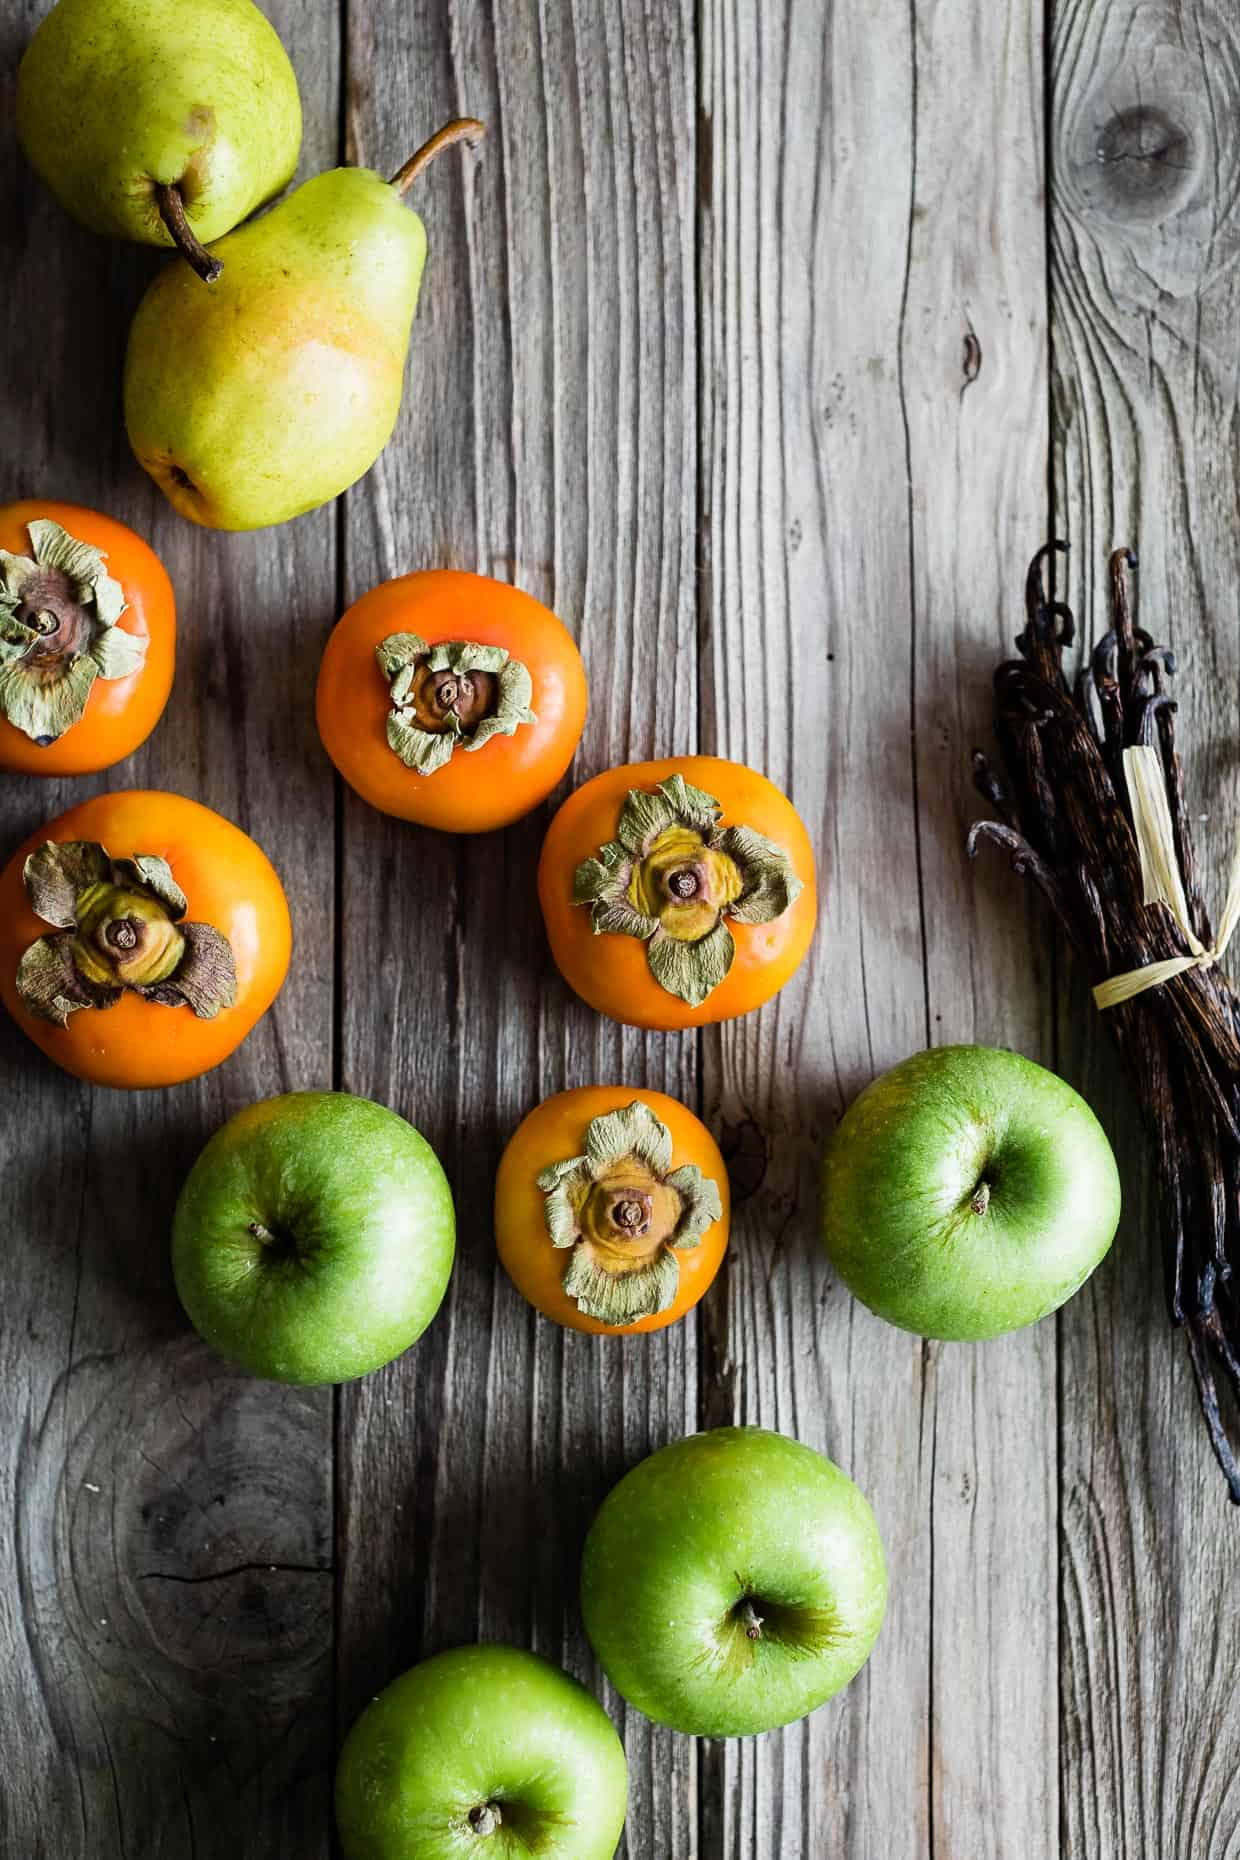 Apples, Pears, & Persimmons